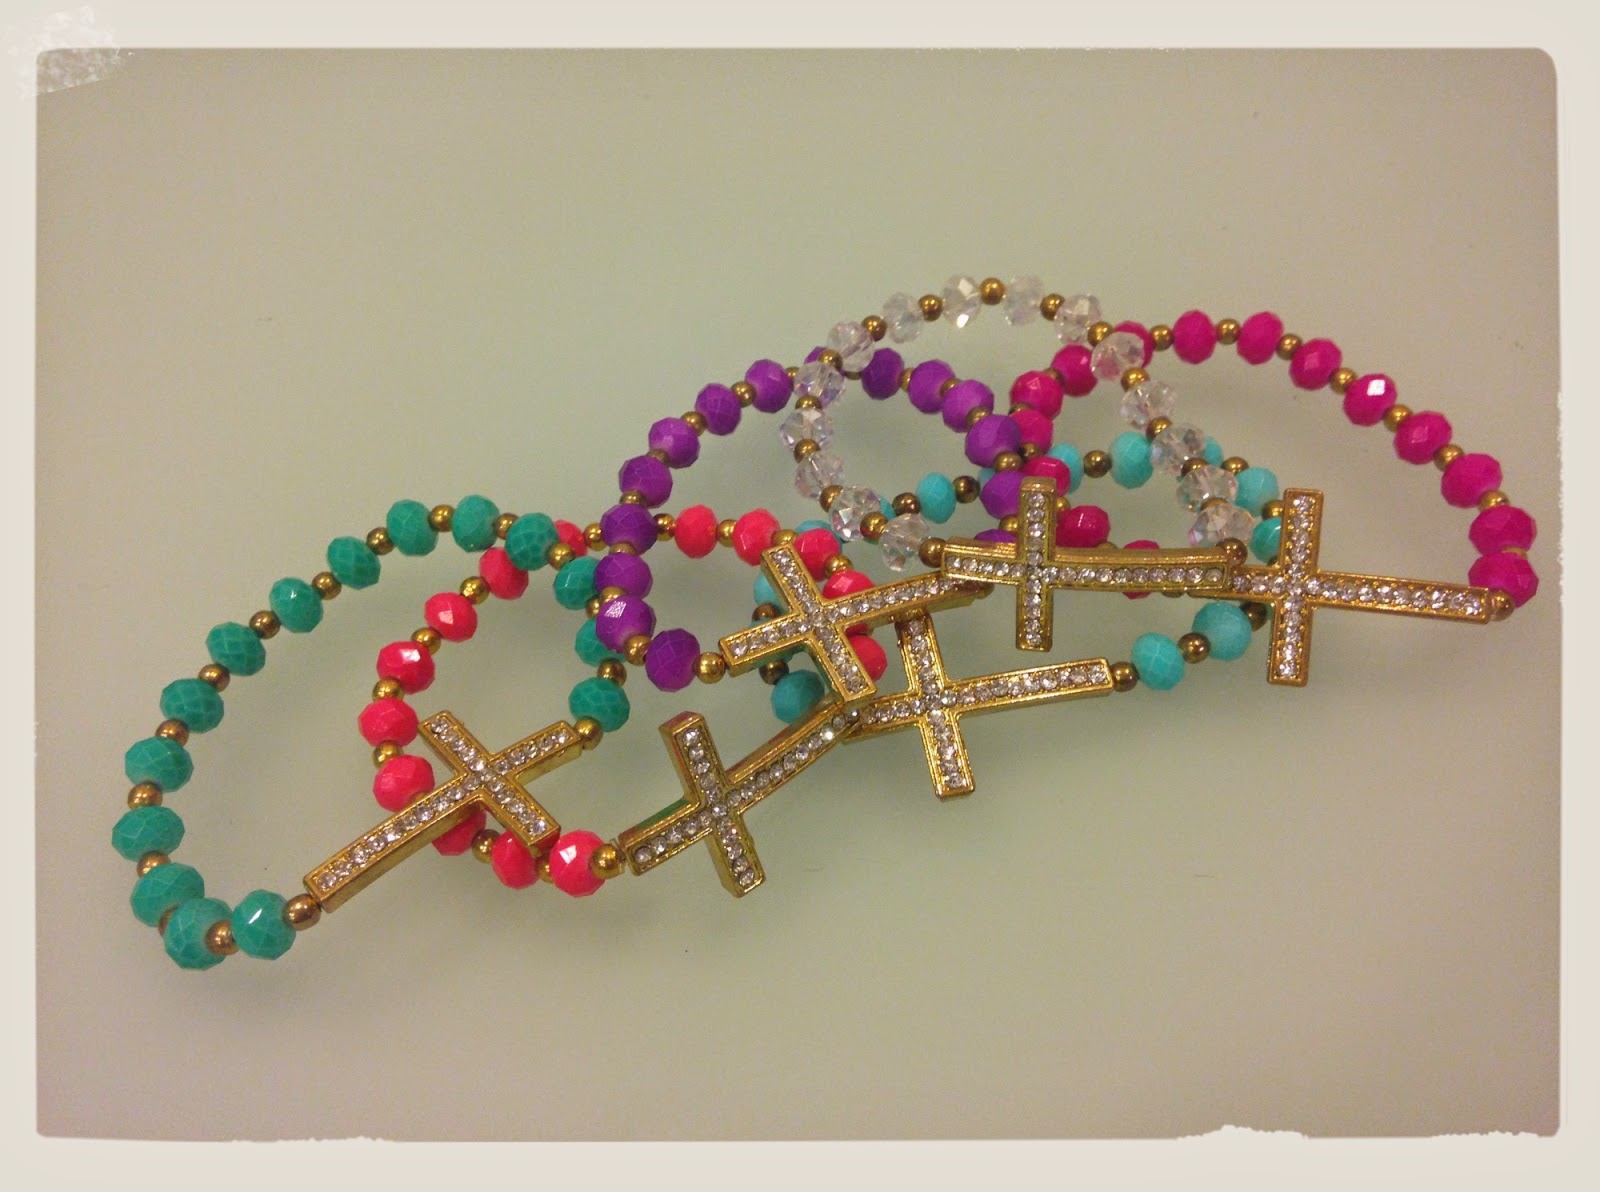 Sparkly Sideways Cross Charm Bracelet | Handmade with Swarovski Crystal Beads